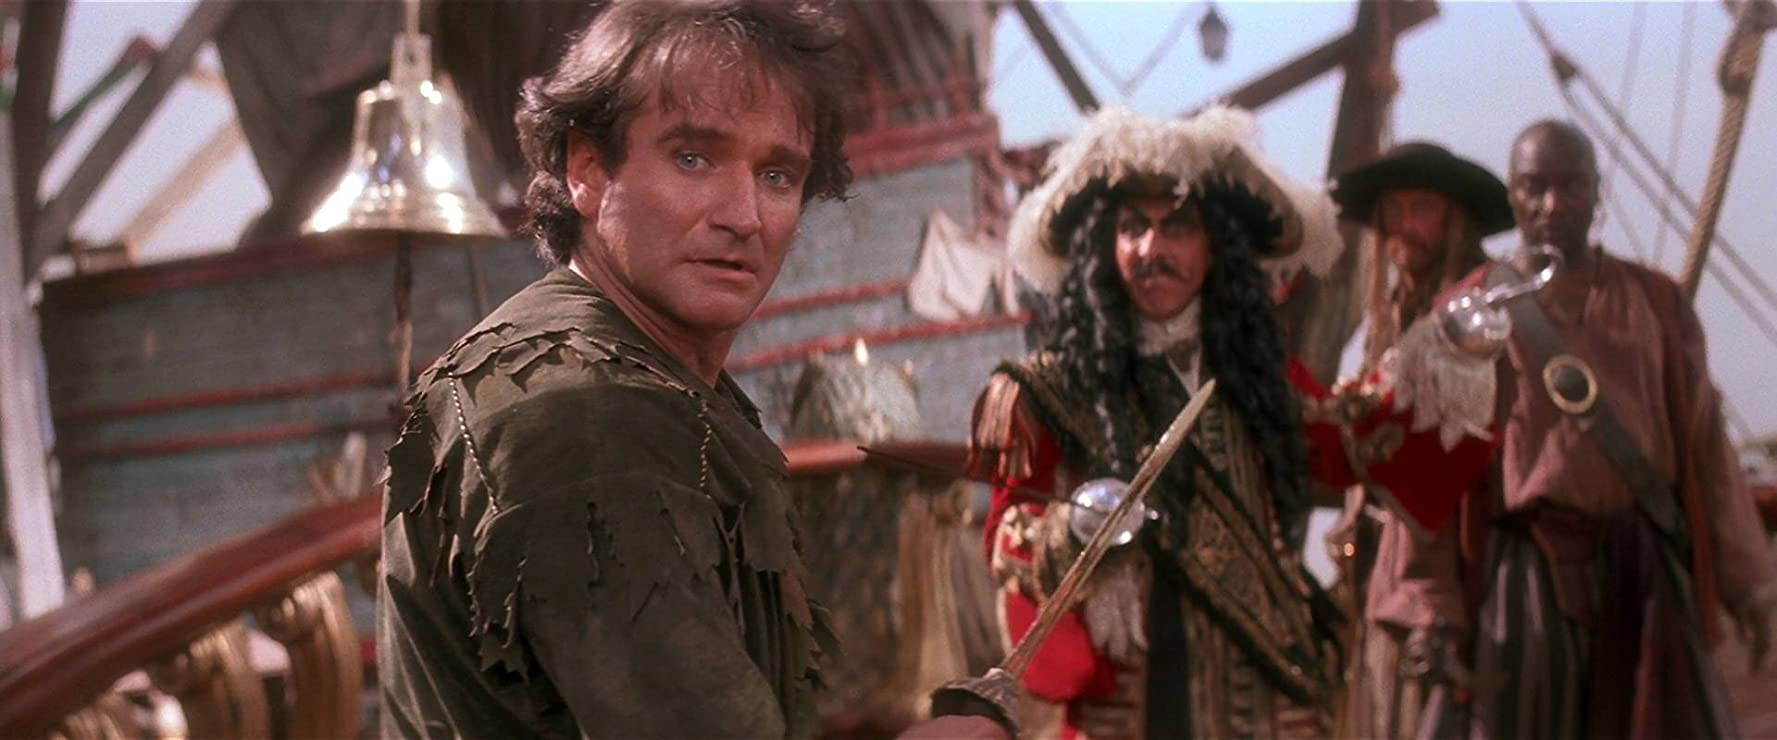 Dustin Hoffman and Robin Williams in Hook (1991)